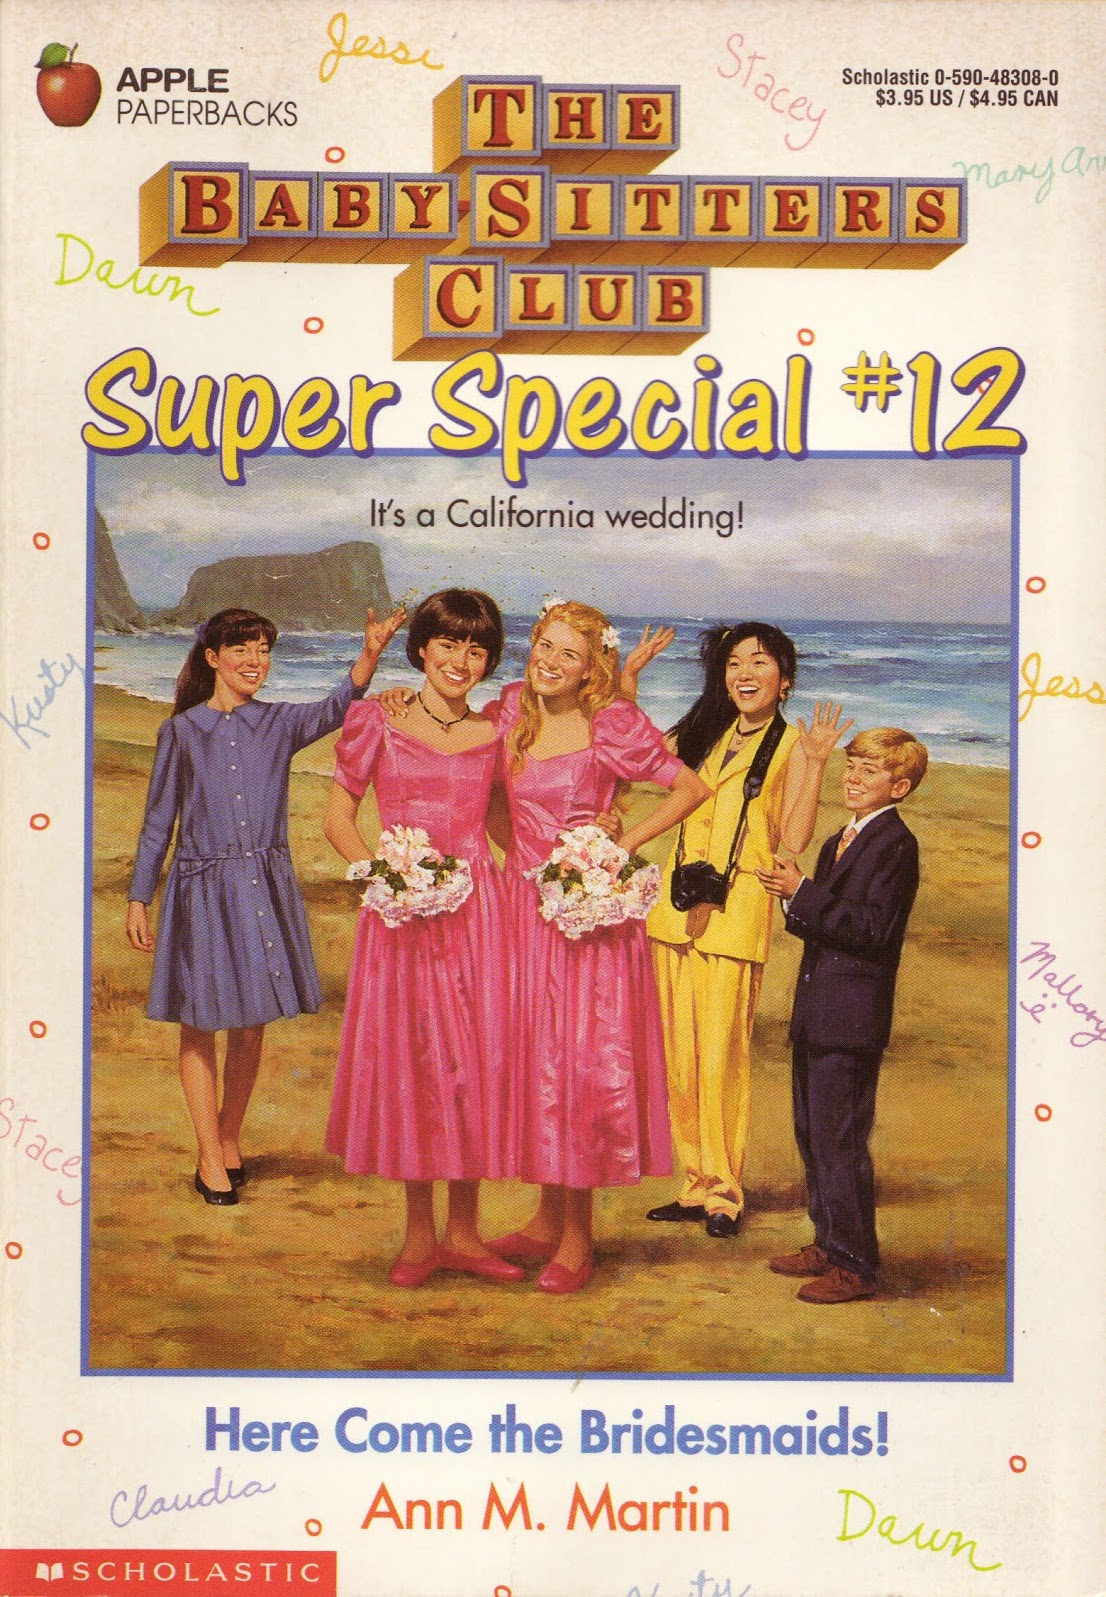 Here Come The Bridesmaids The Baby Sitters Club Wiki Fandom